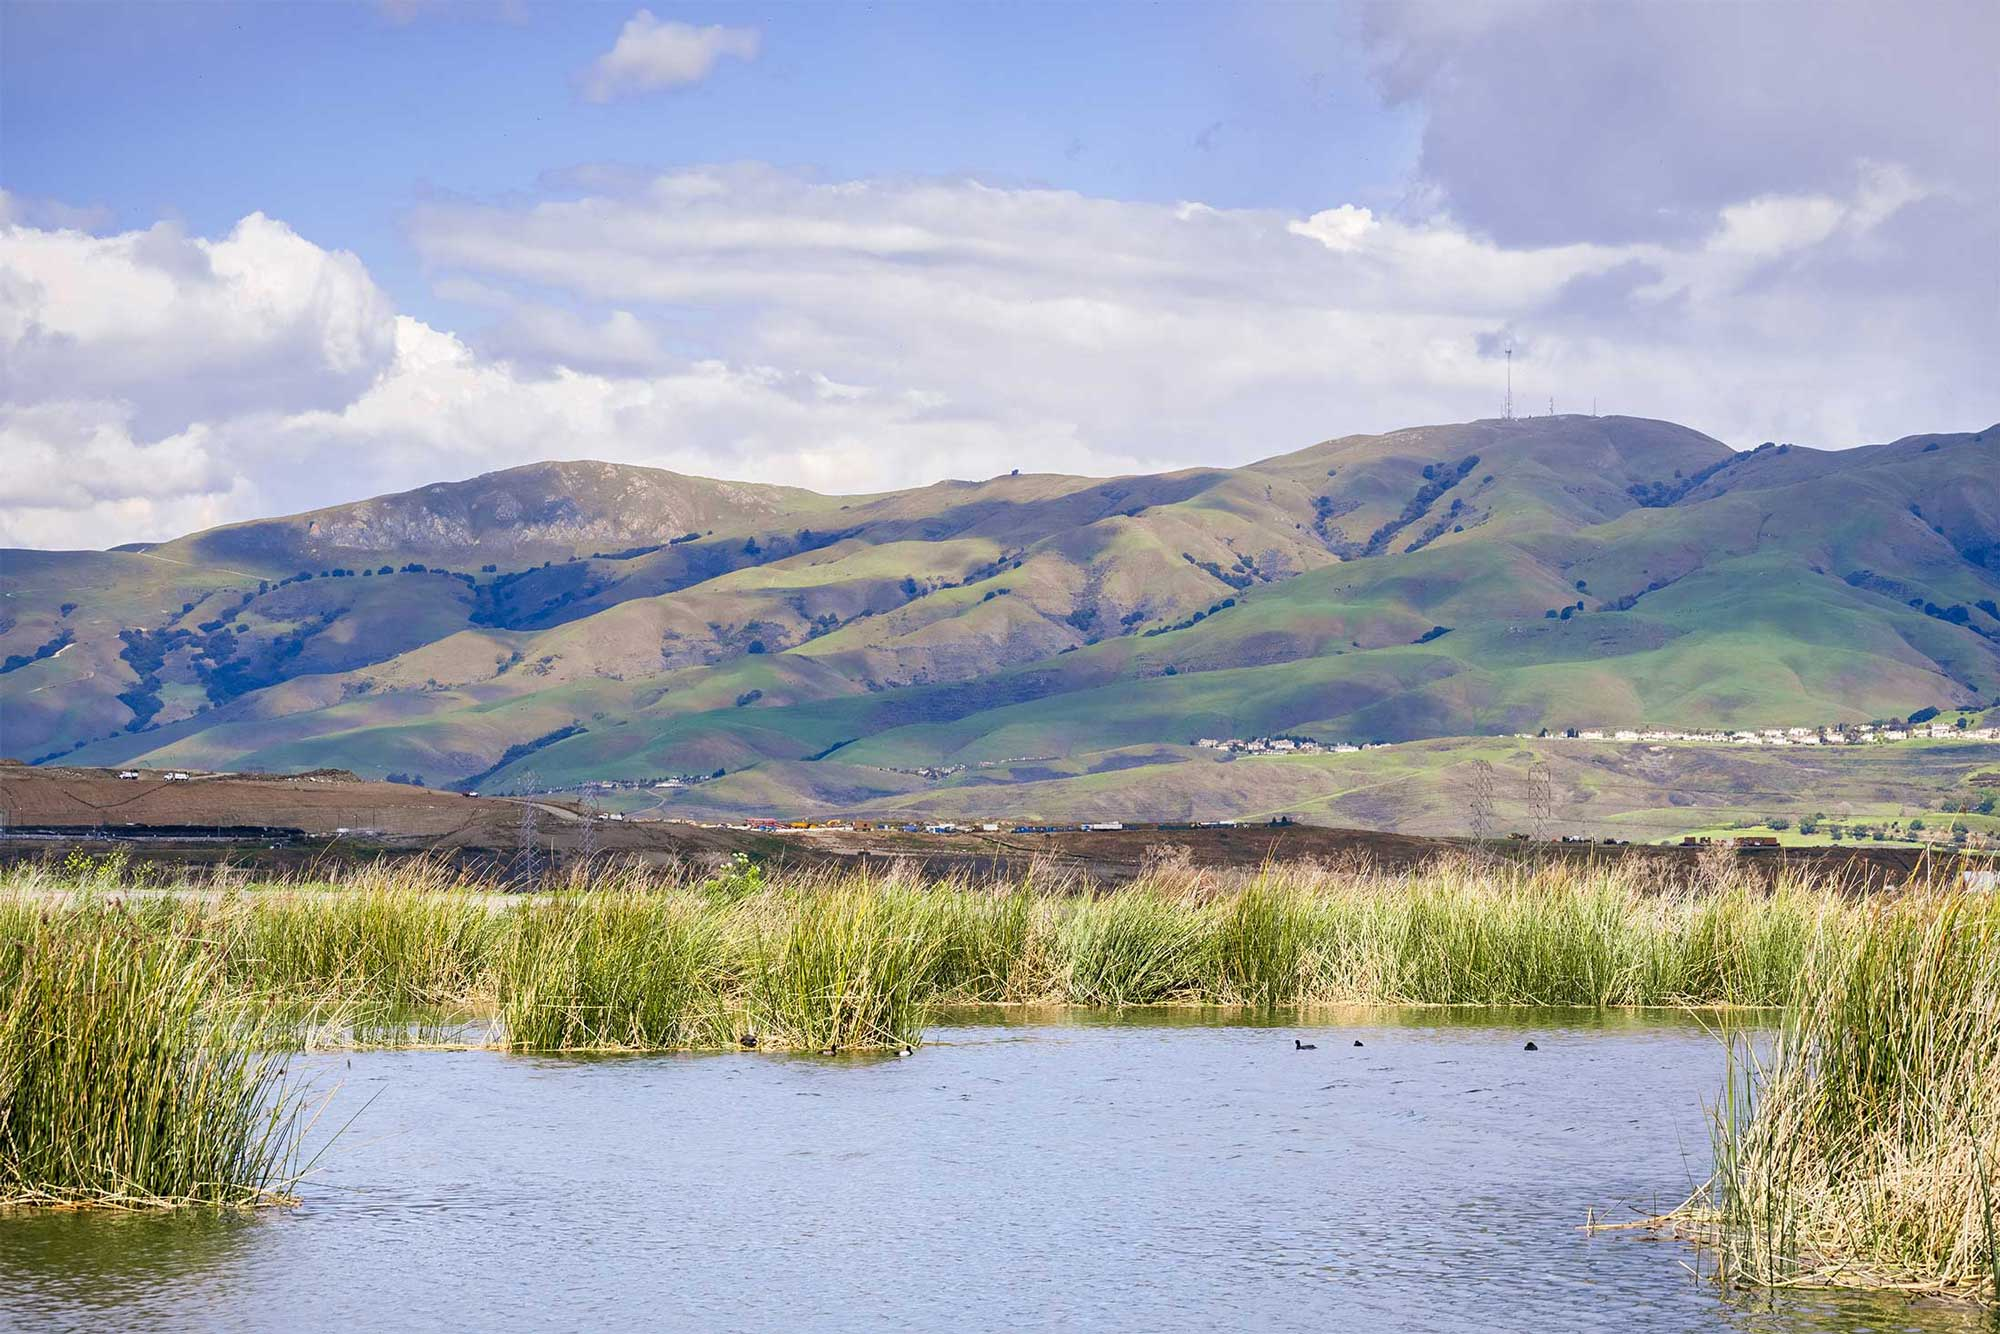 photo - Wetlands and the Diablo Range Mountains in the background, in San Jose, California